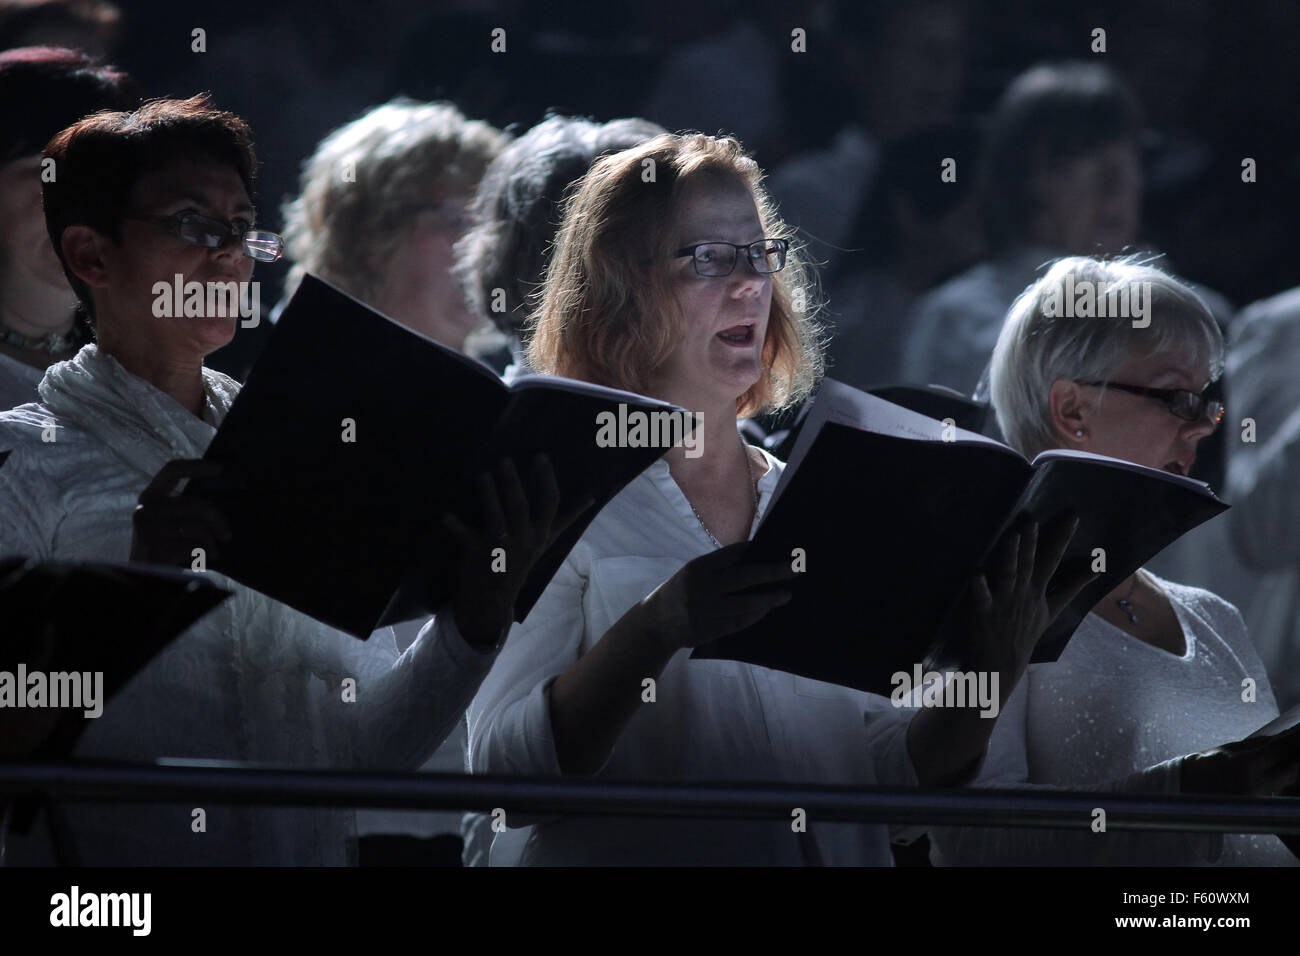 The Christian pop oratorio 'Luther' has been performed for the first time on stage on Reformation Day 31.Oct.2015 - Stock Image